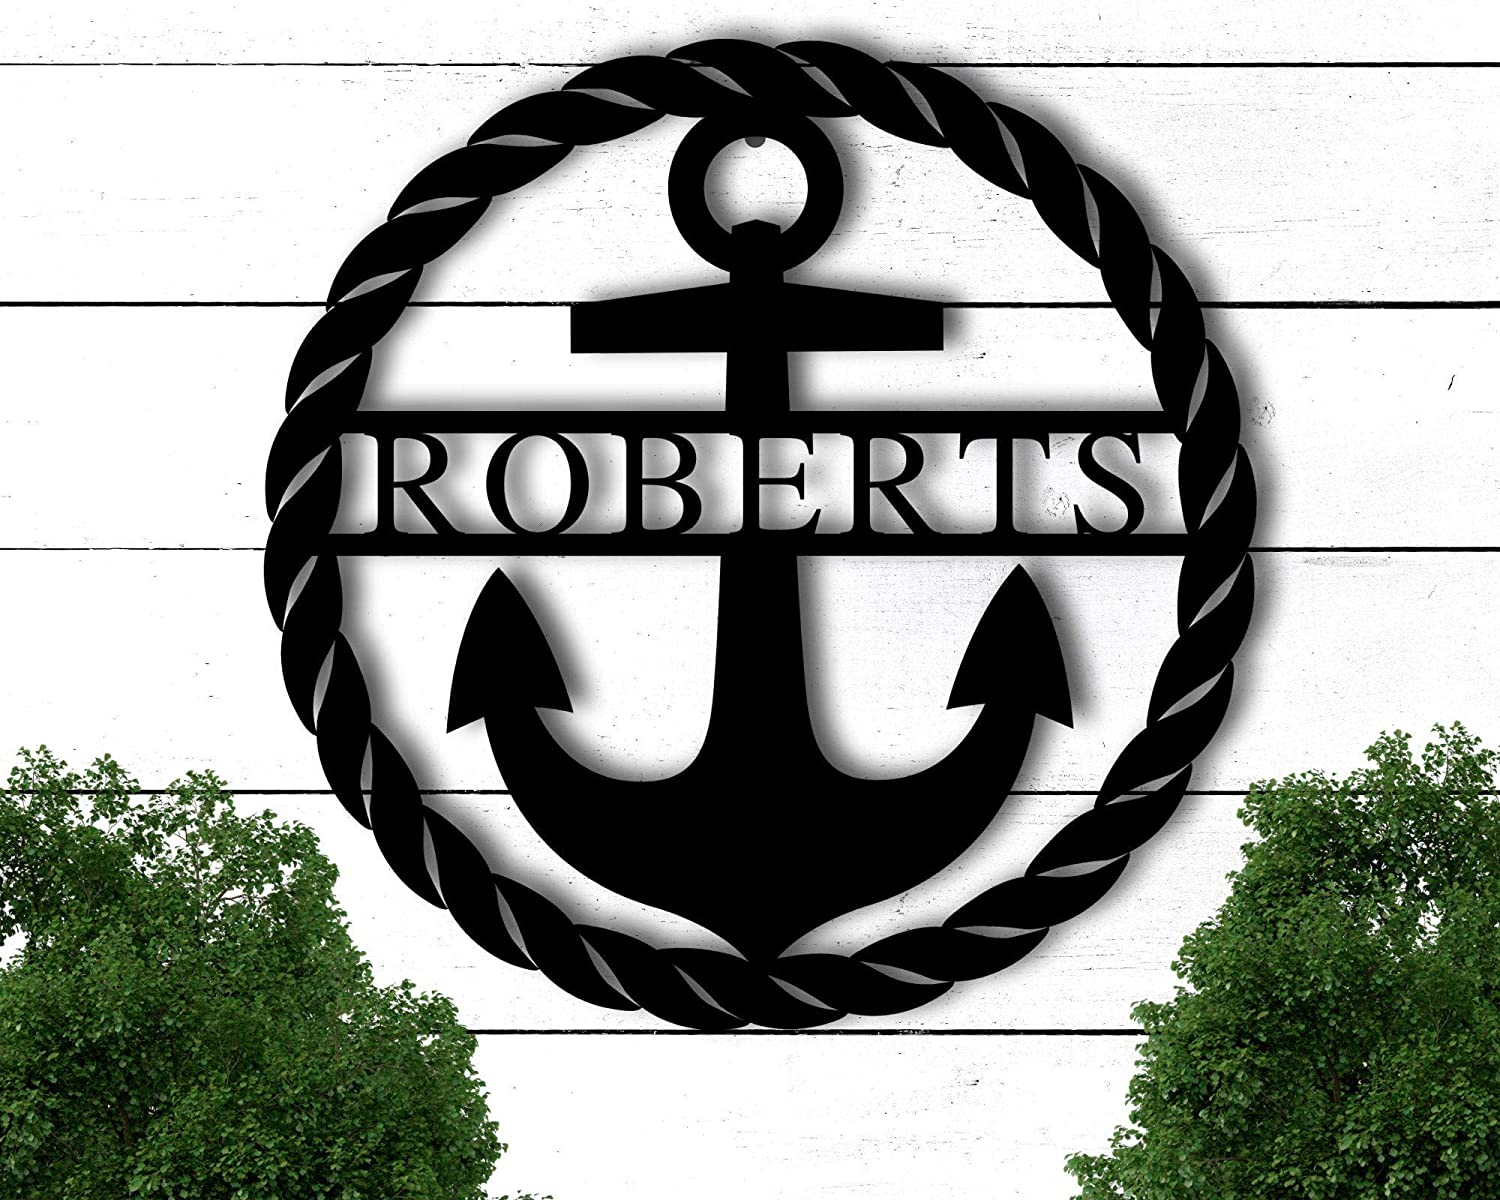 Personalized Metal Anchor Sign, Beach House Sign Personalized, Anchor Wall Decor, Family Name Metal Sign, Last Name Sign, Front Porch Sign,Black 14 Inch